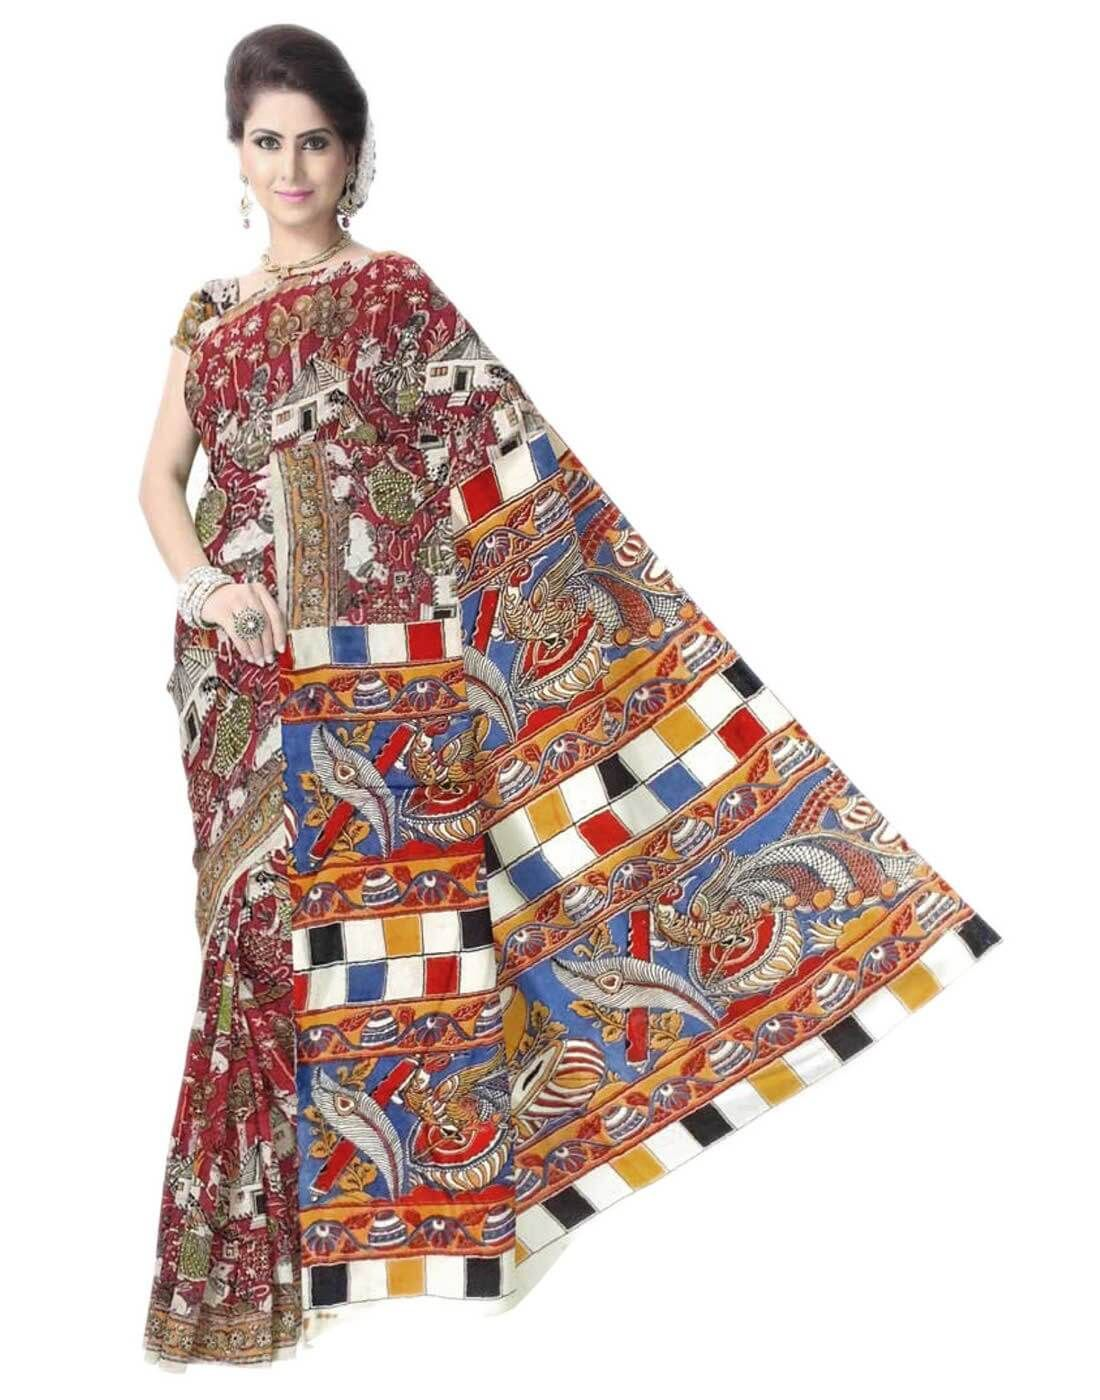 Get quality ethnic products and great service with GiftPiper.com. Pay COD, 15 day returns (Resellers are welcome- WhatsApp us on 9902488133) 15% Discount on Orders Above Rs 1000 with voucher code-FACEBOOK. Details at  http://www.giftpiper.com/product/kalamkari-saree-in-cotton-silk-multicolor-5Unique handblock printed kalamkari saree .